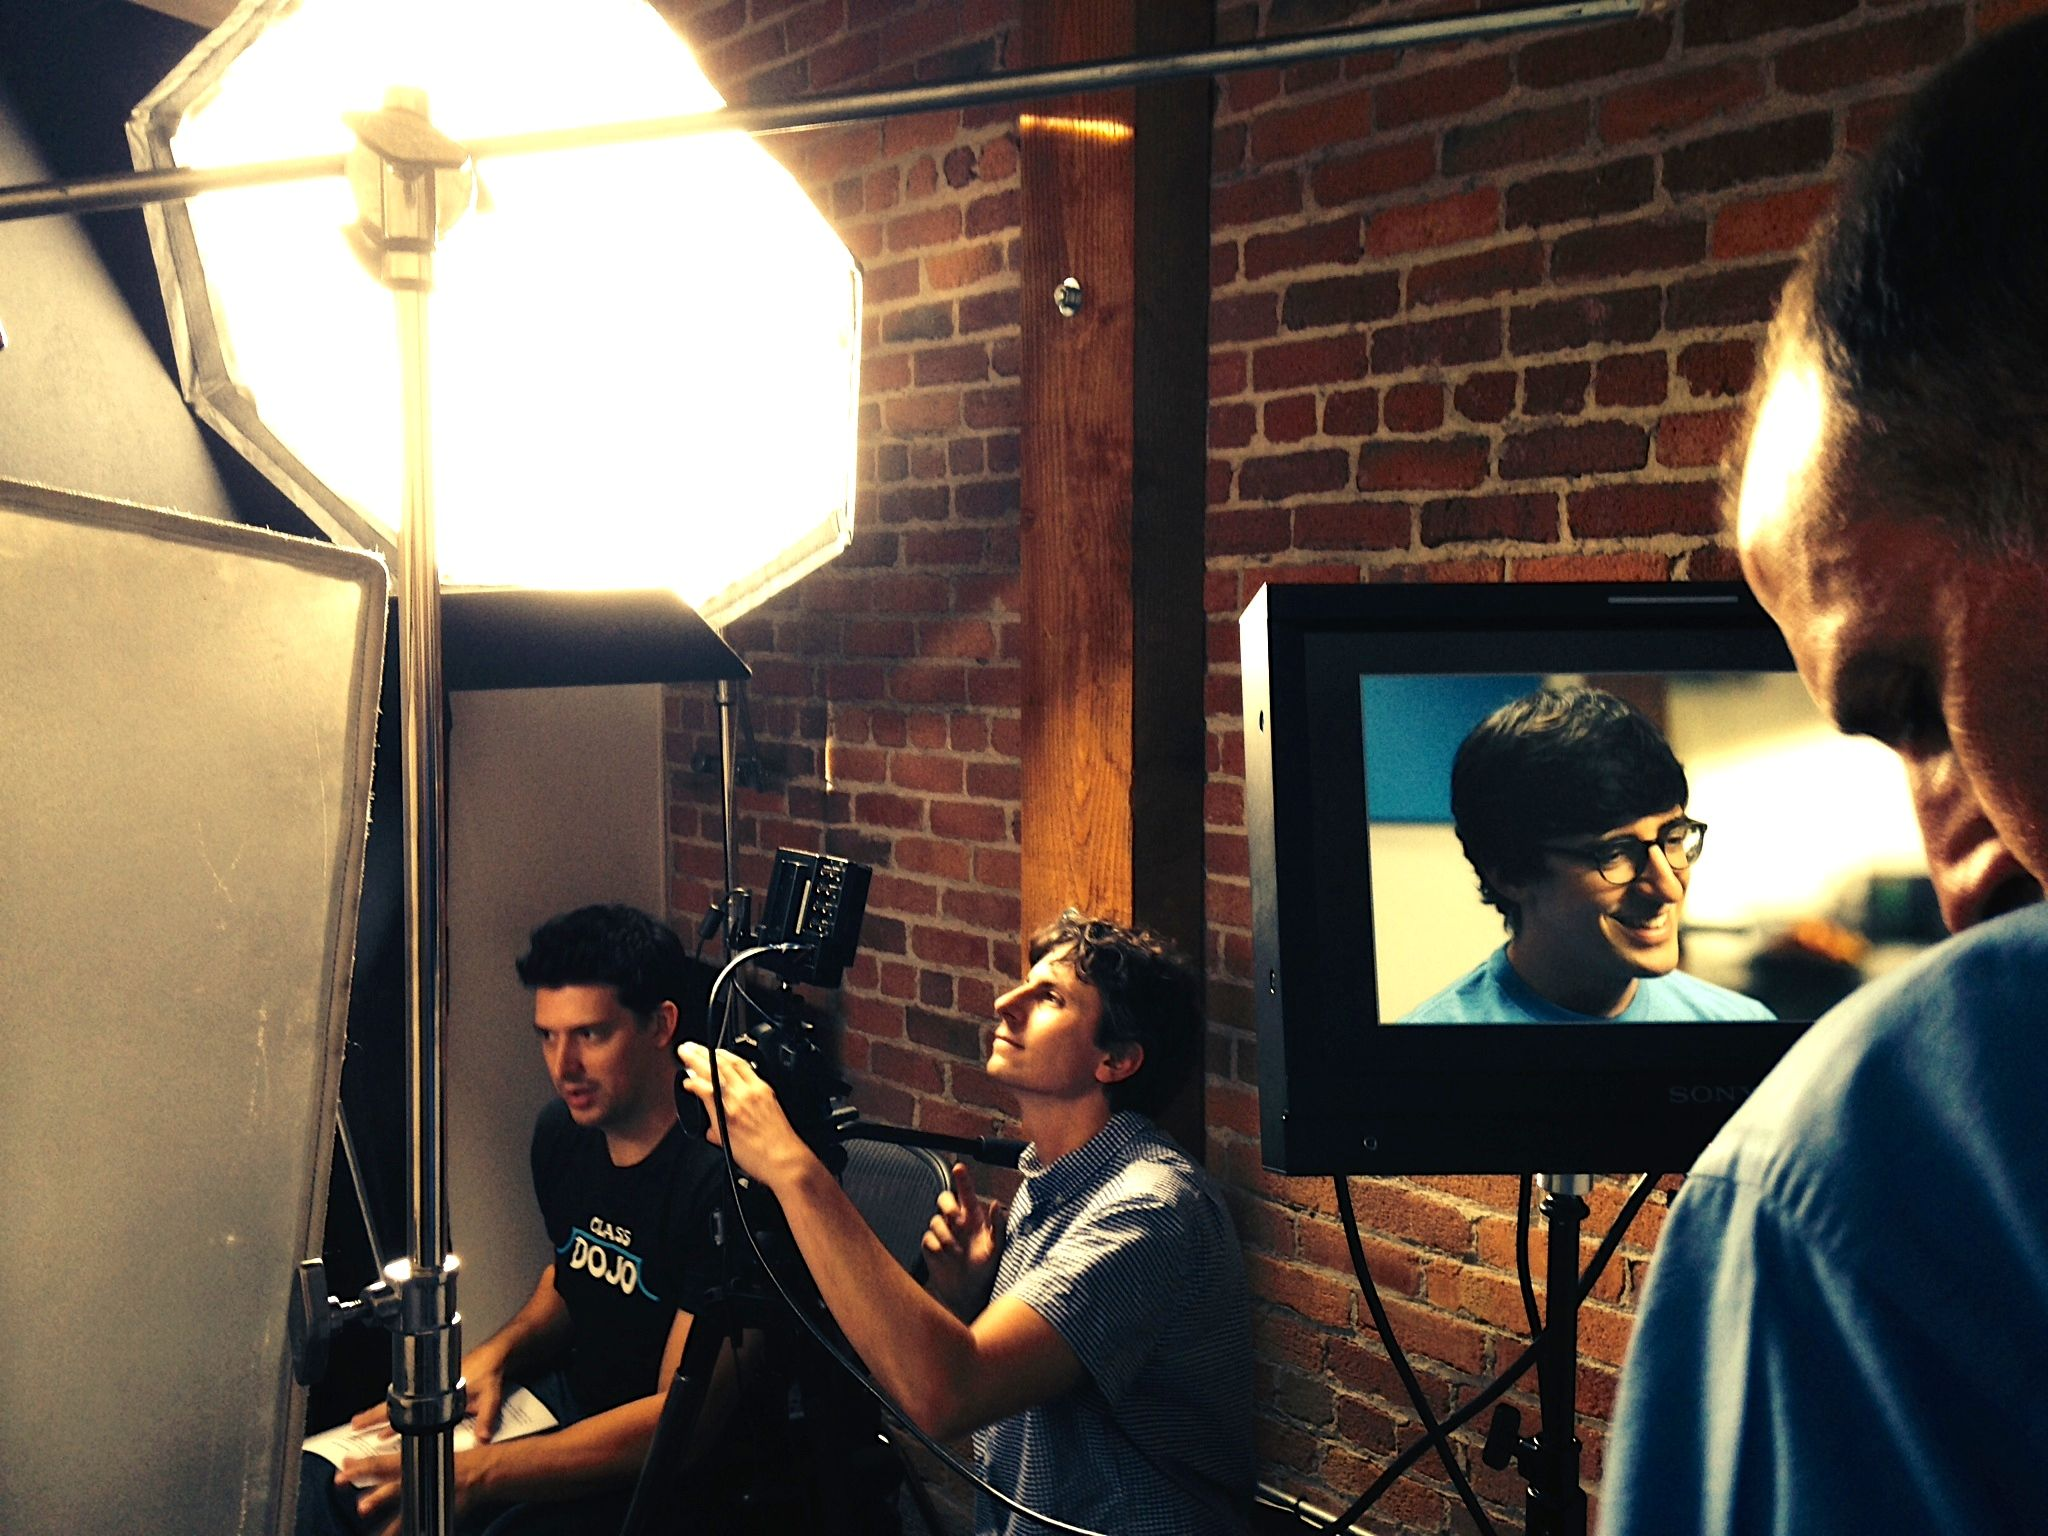 Shoot at the headquarters of quizlet! our film crew at work